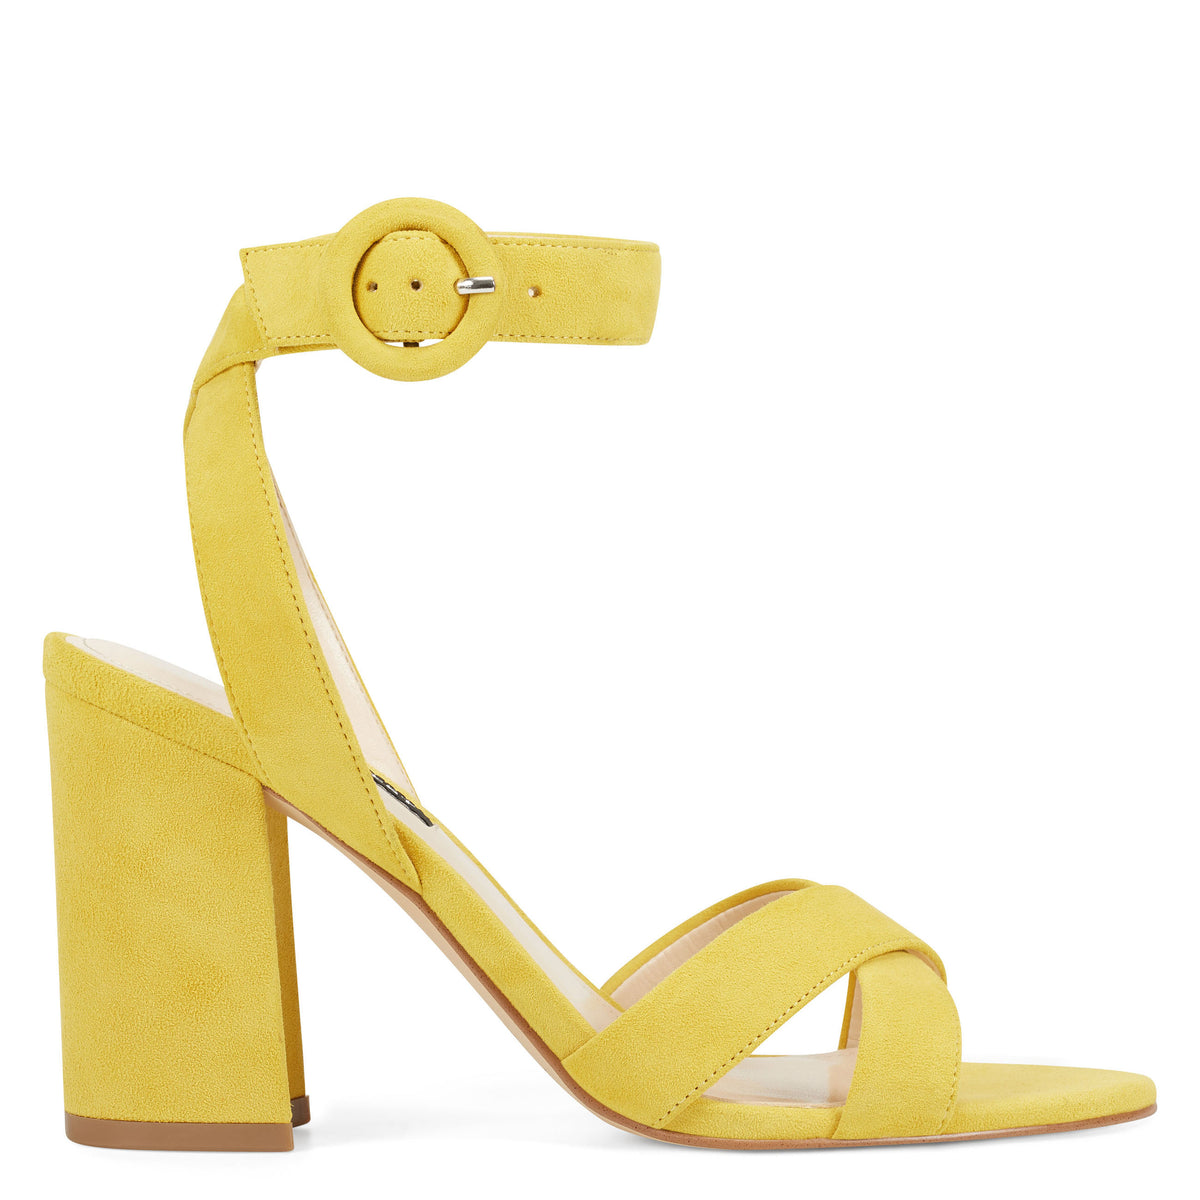 nikki-block-heel-sandals-in-yellow-suede